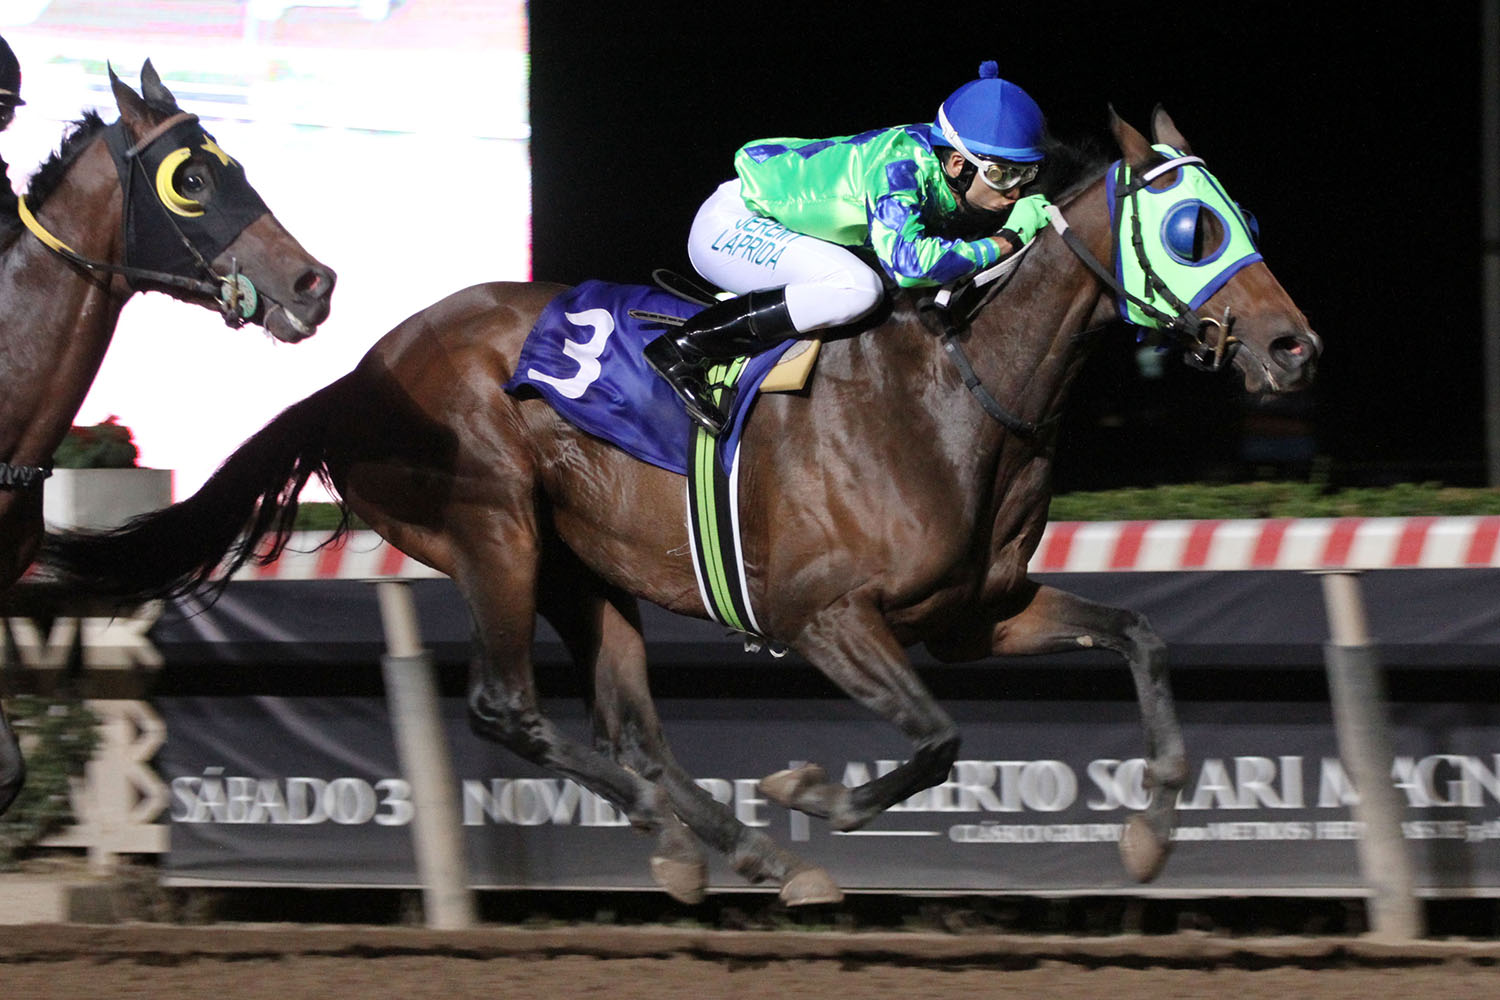 Cherokee Queen (Bluegrass Cat) brilla en Handicap (1200m-Arena-HCH). - Staff ElTurf.com